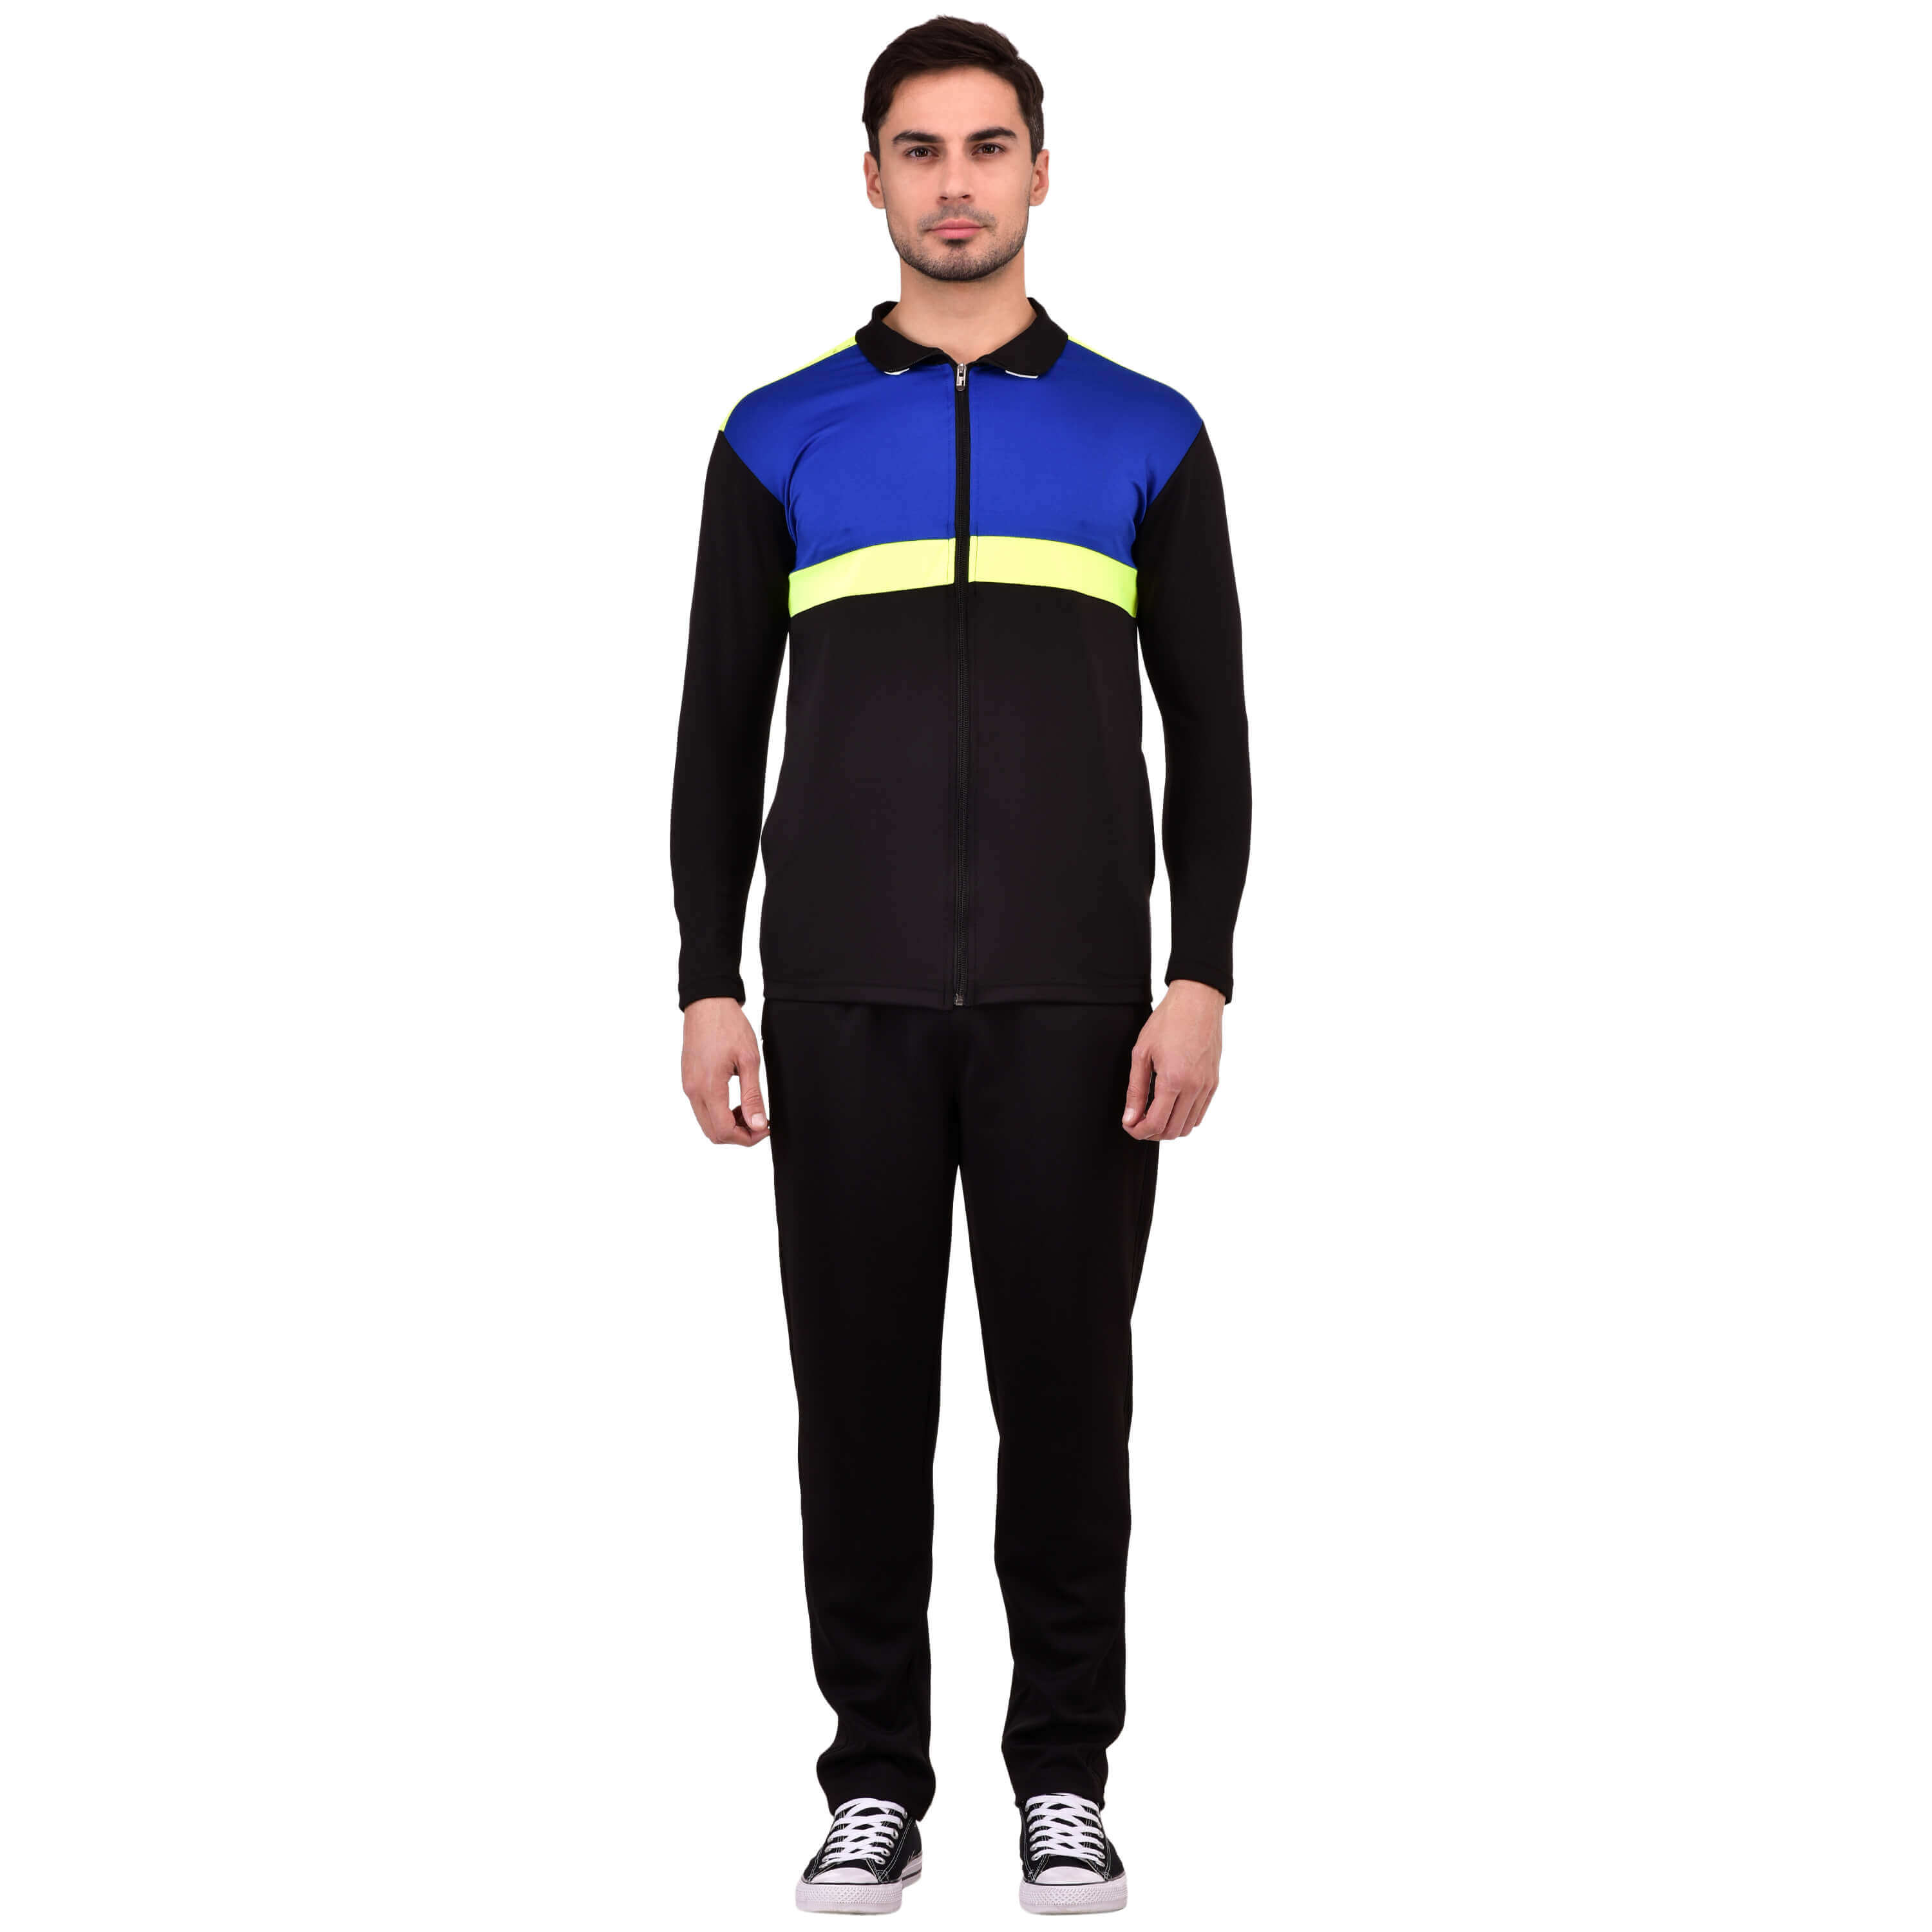 Mens Black Tracksuit Manufacturers in Pune